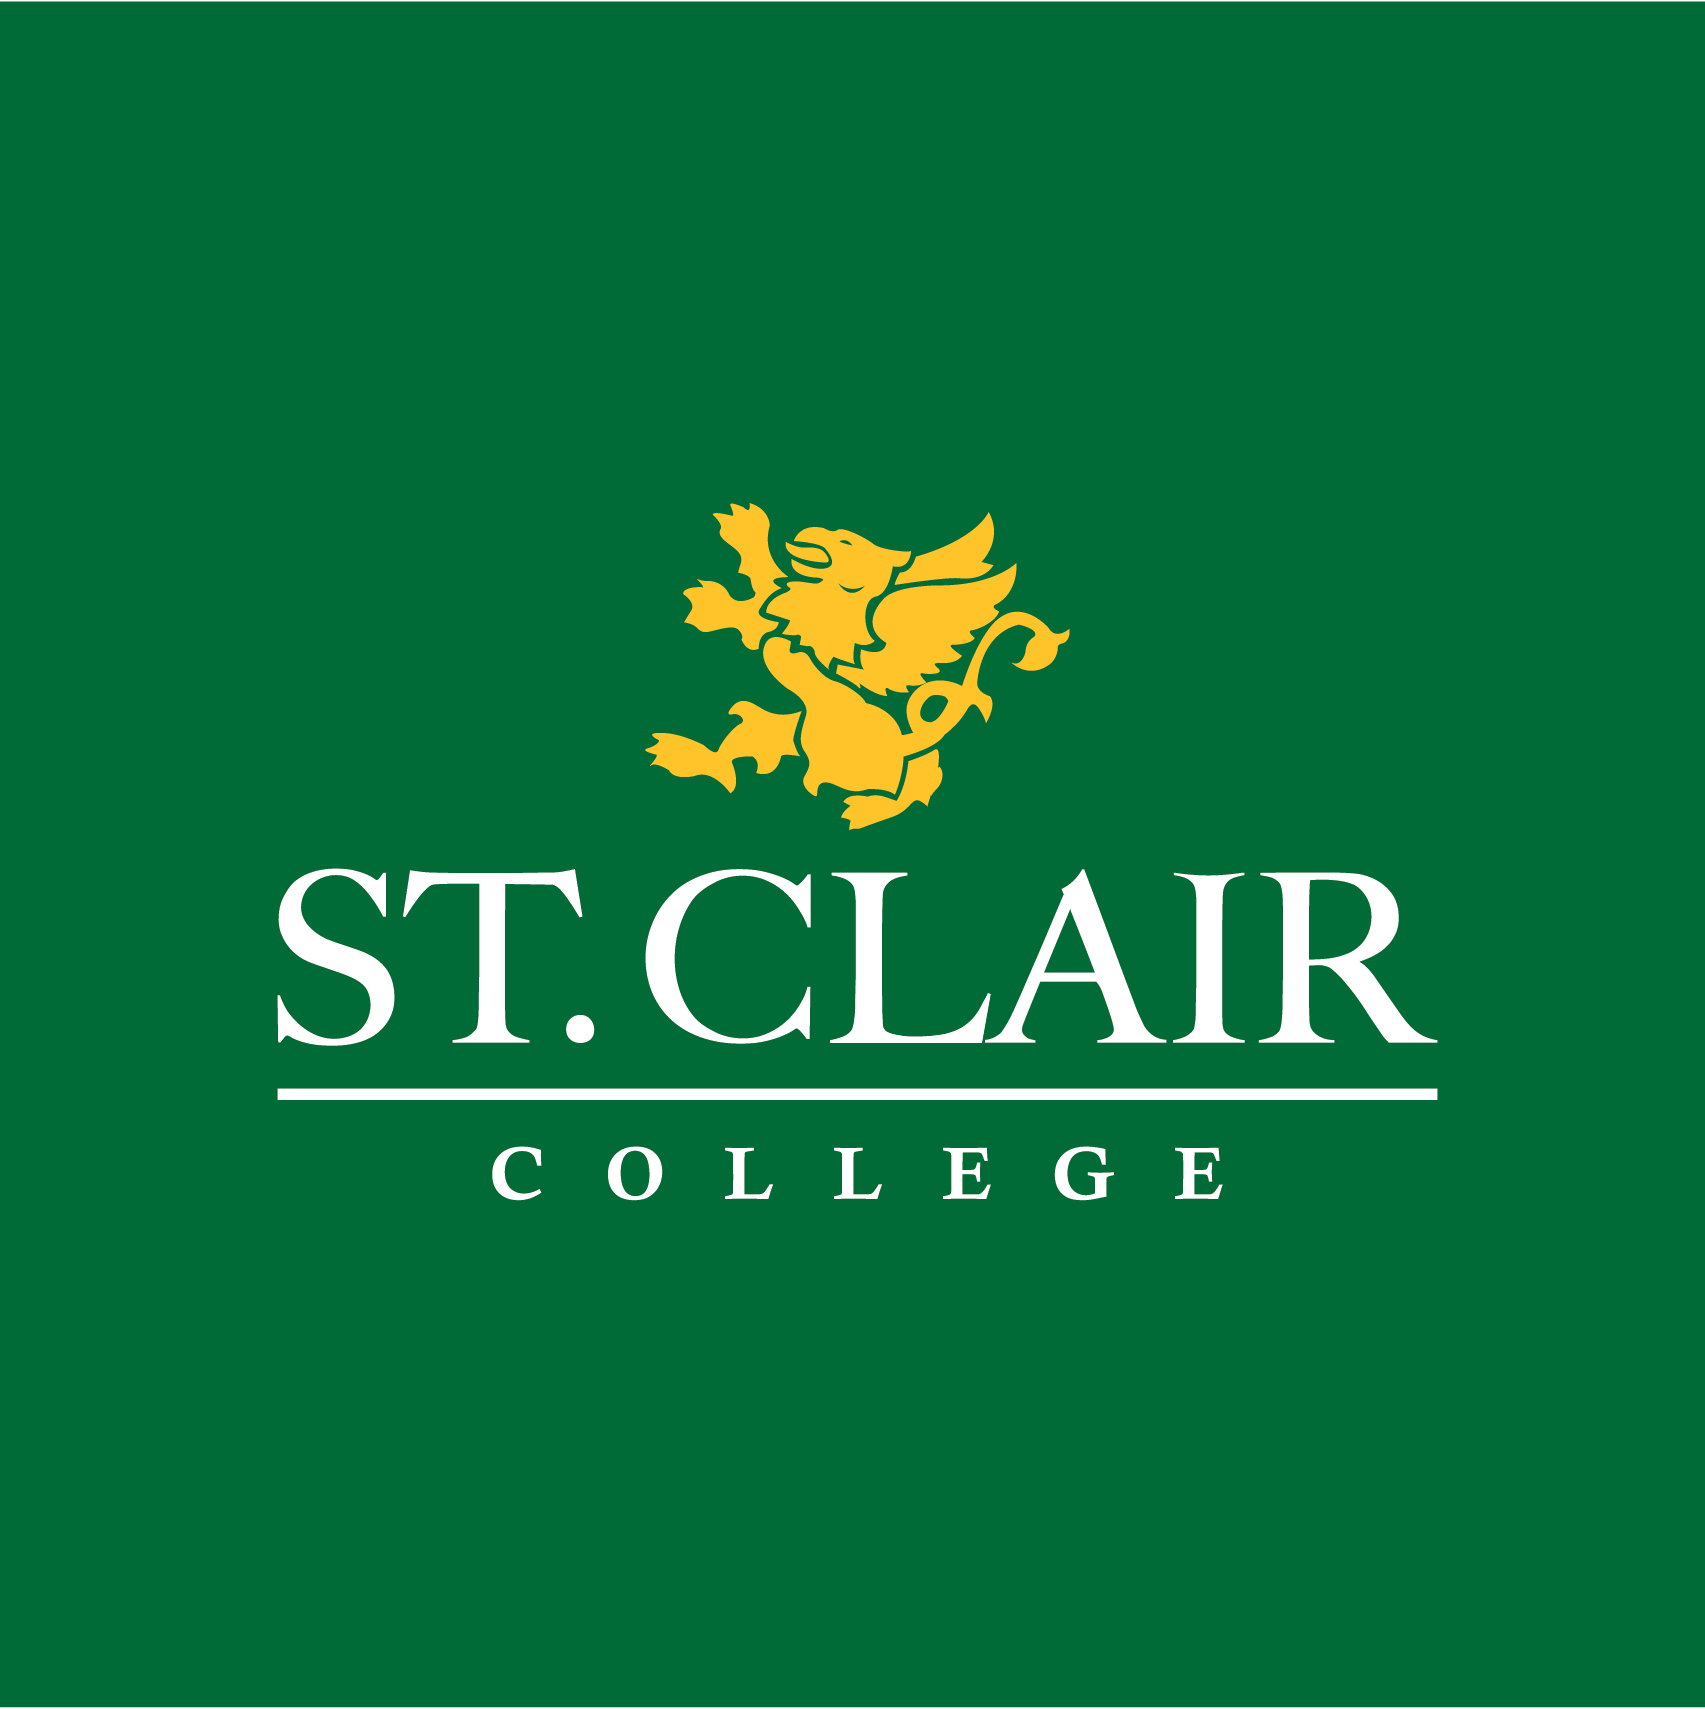 St. Clair College Green Background with Yellow image of a Griffin